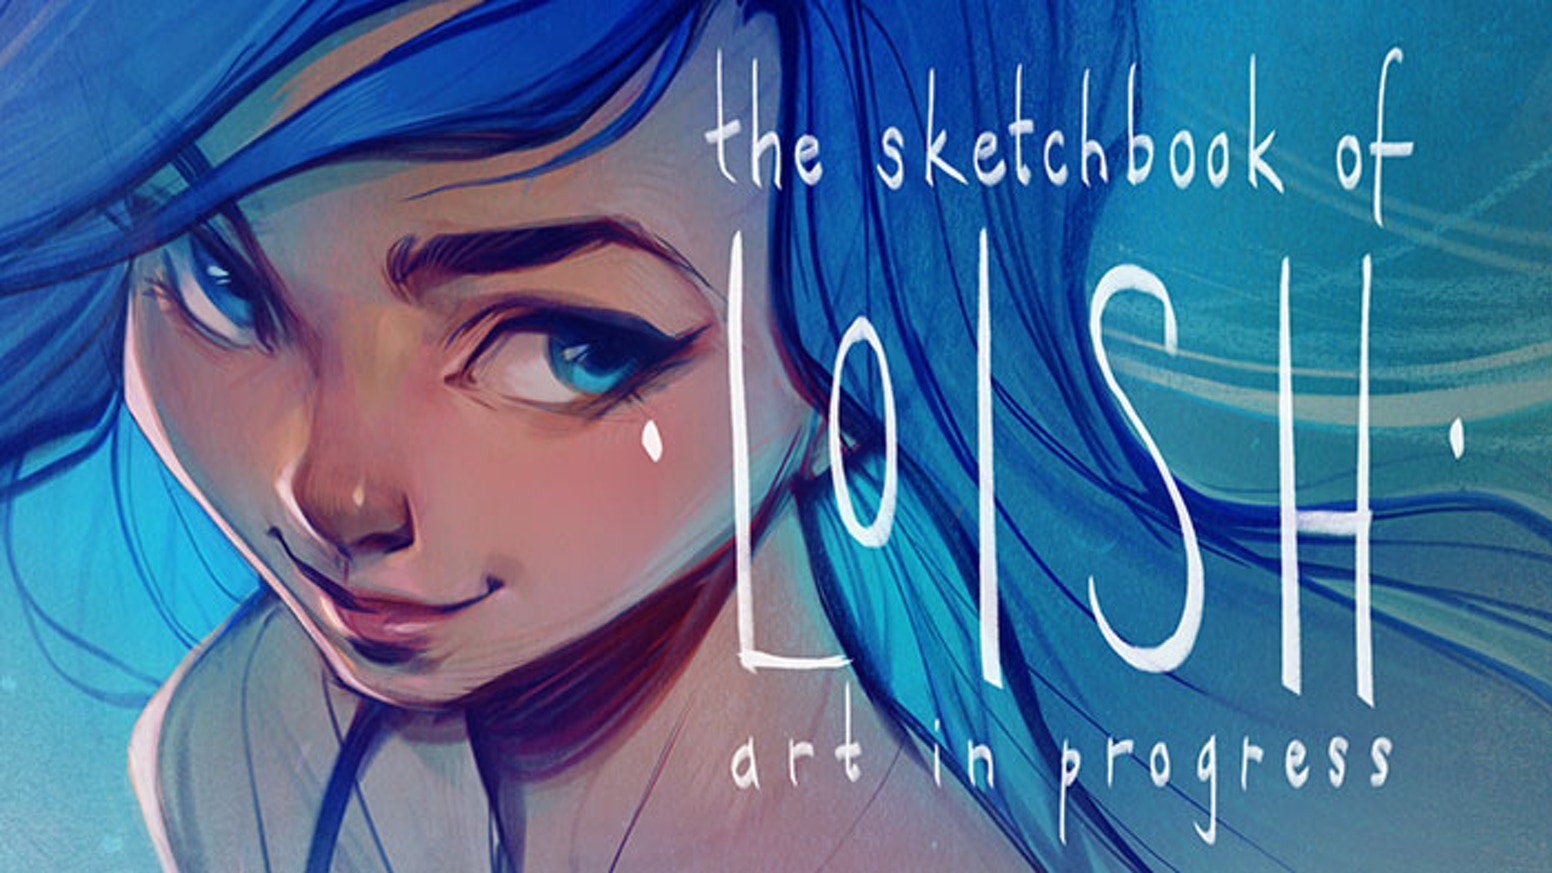 A beautifully presented art book featuring Loish's most dynamic and exploratory sketches, exclusive artwork, painting tips and insights